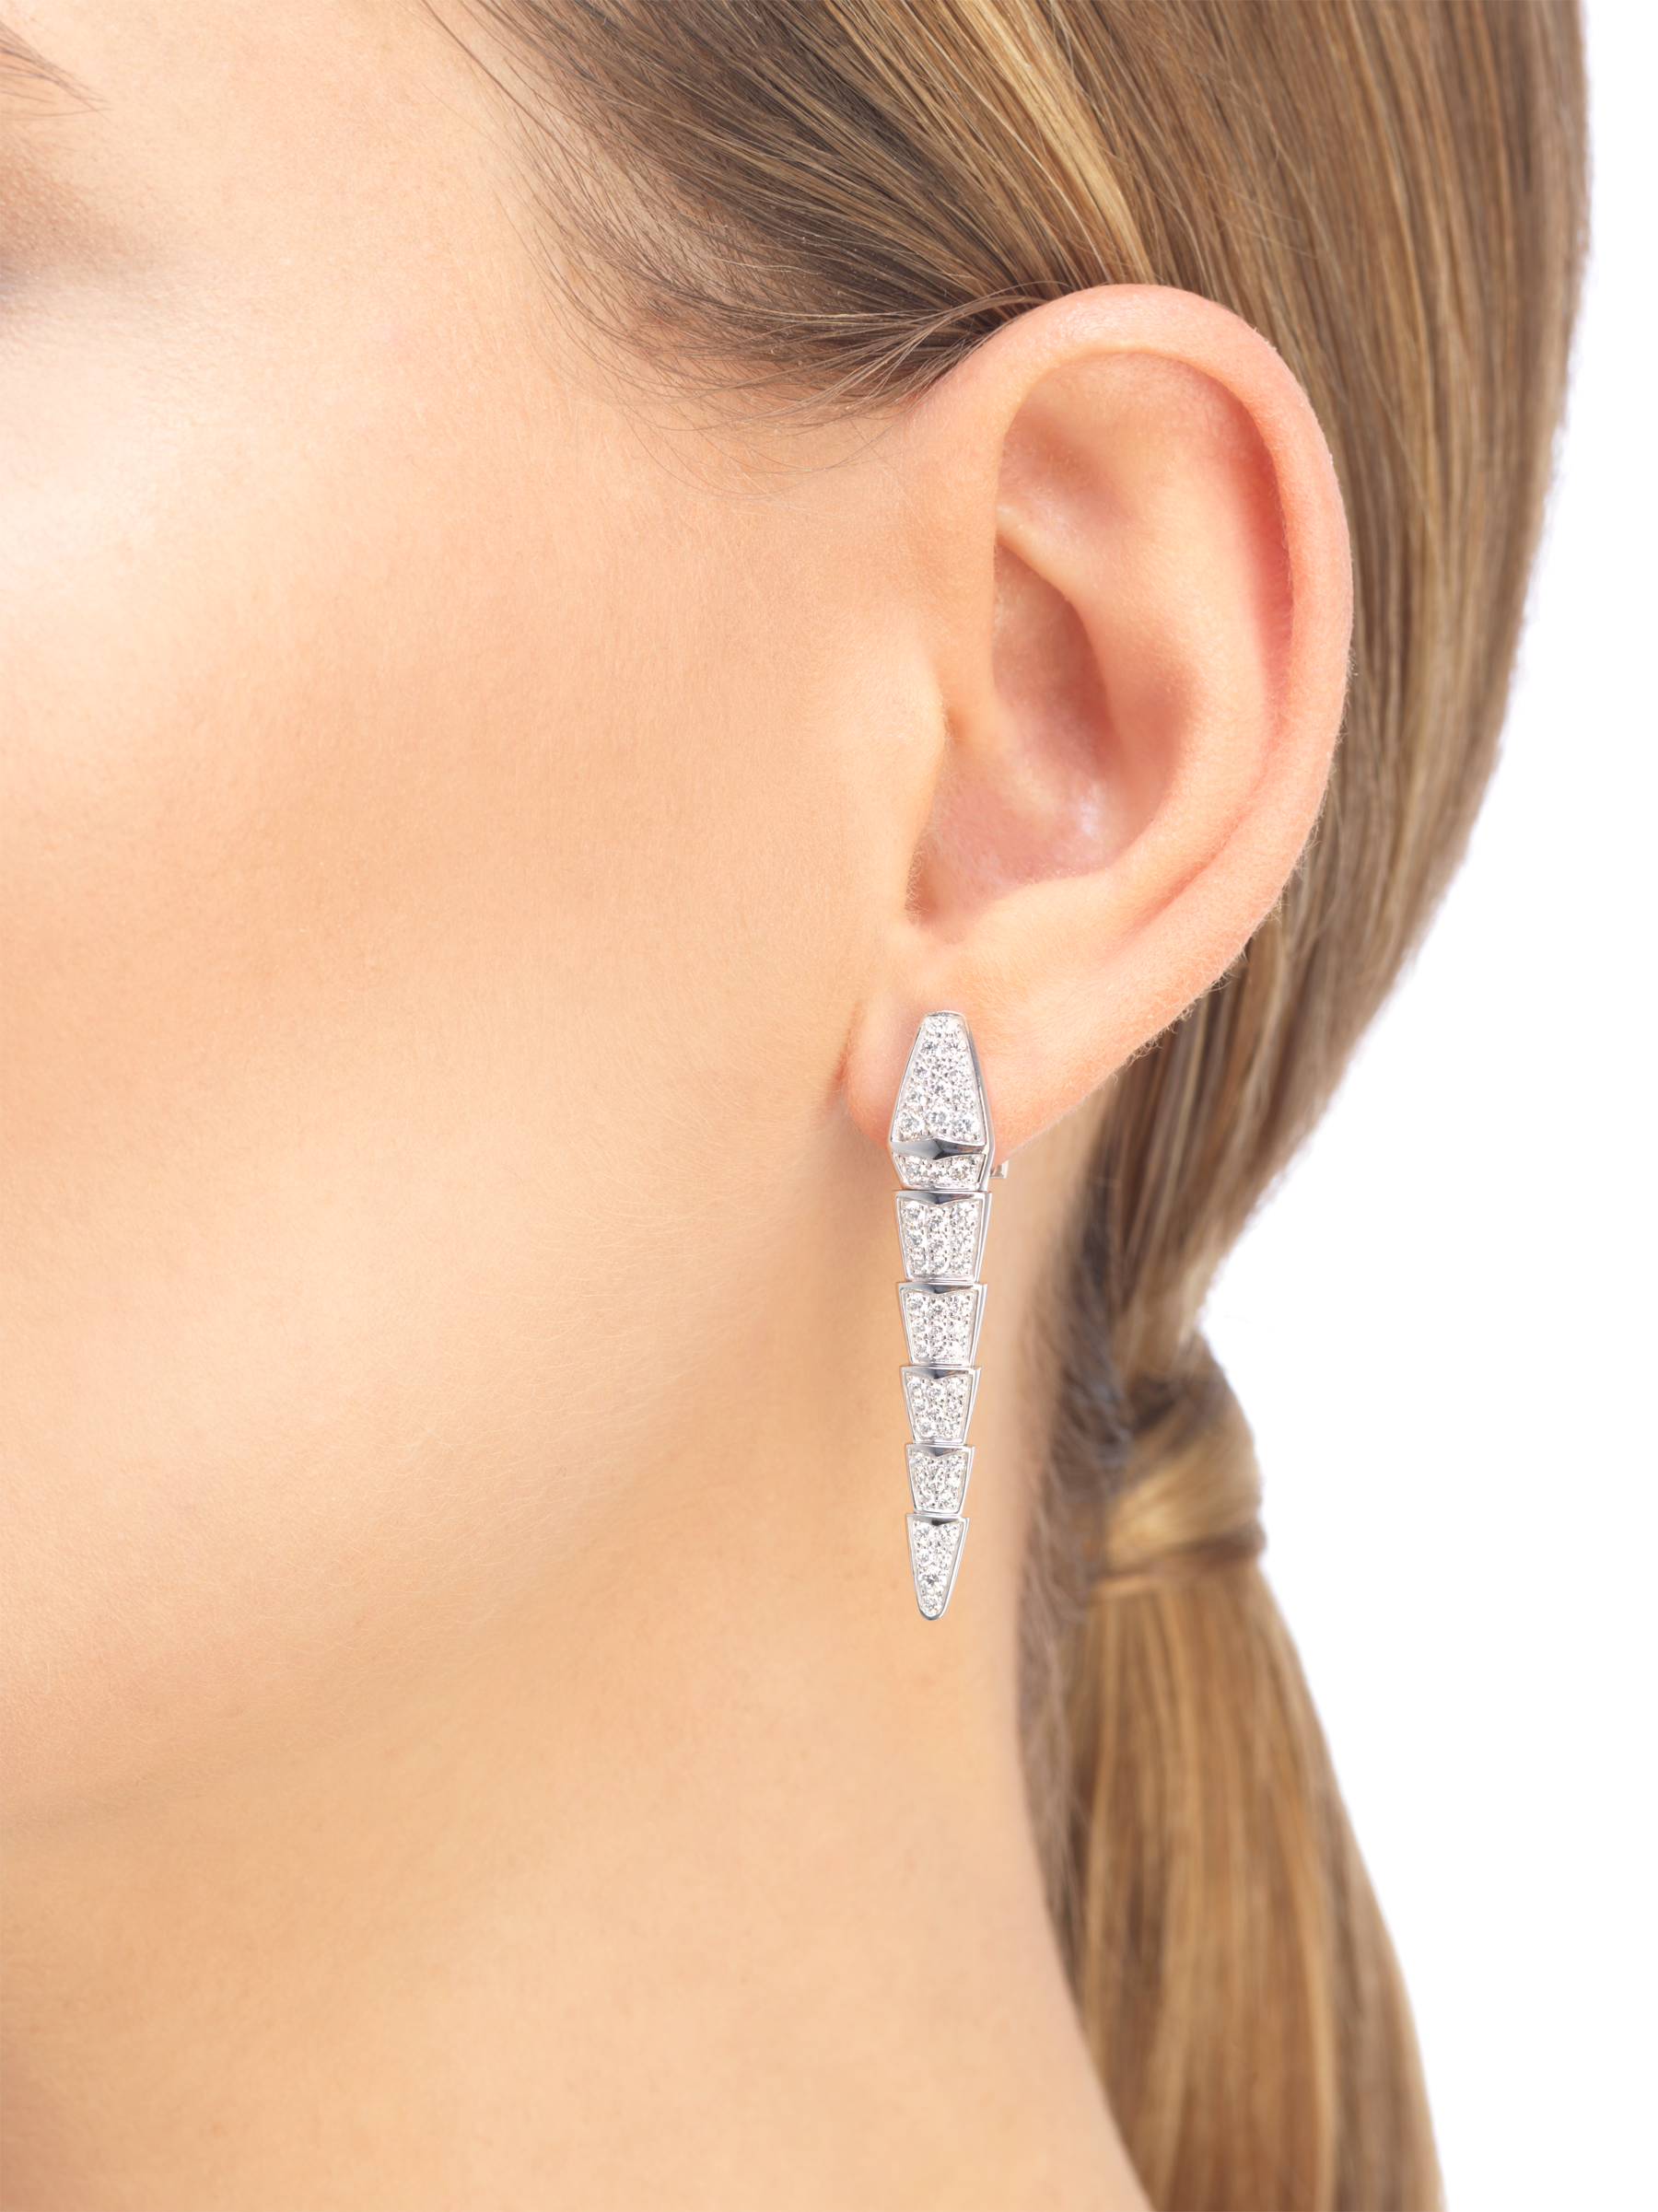 Serpenti earrings in 18 kt white gold, set with full pavé diamonds. 348320 image 4